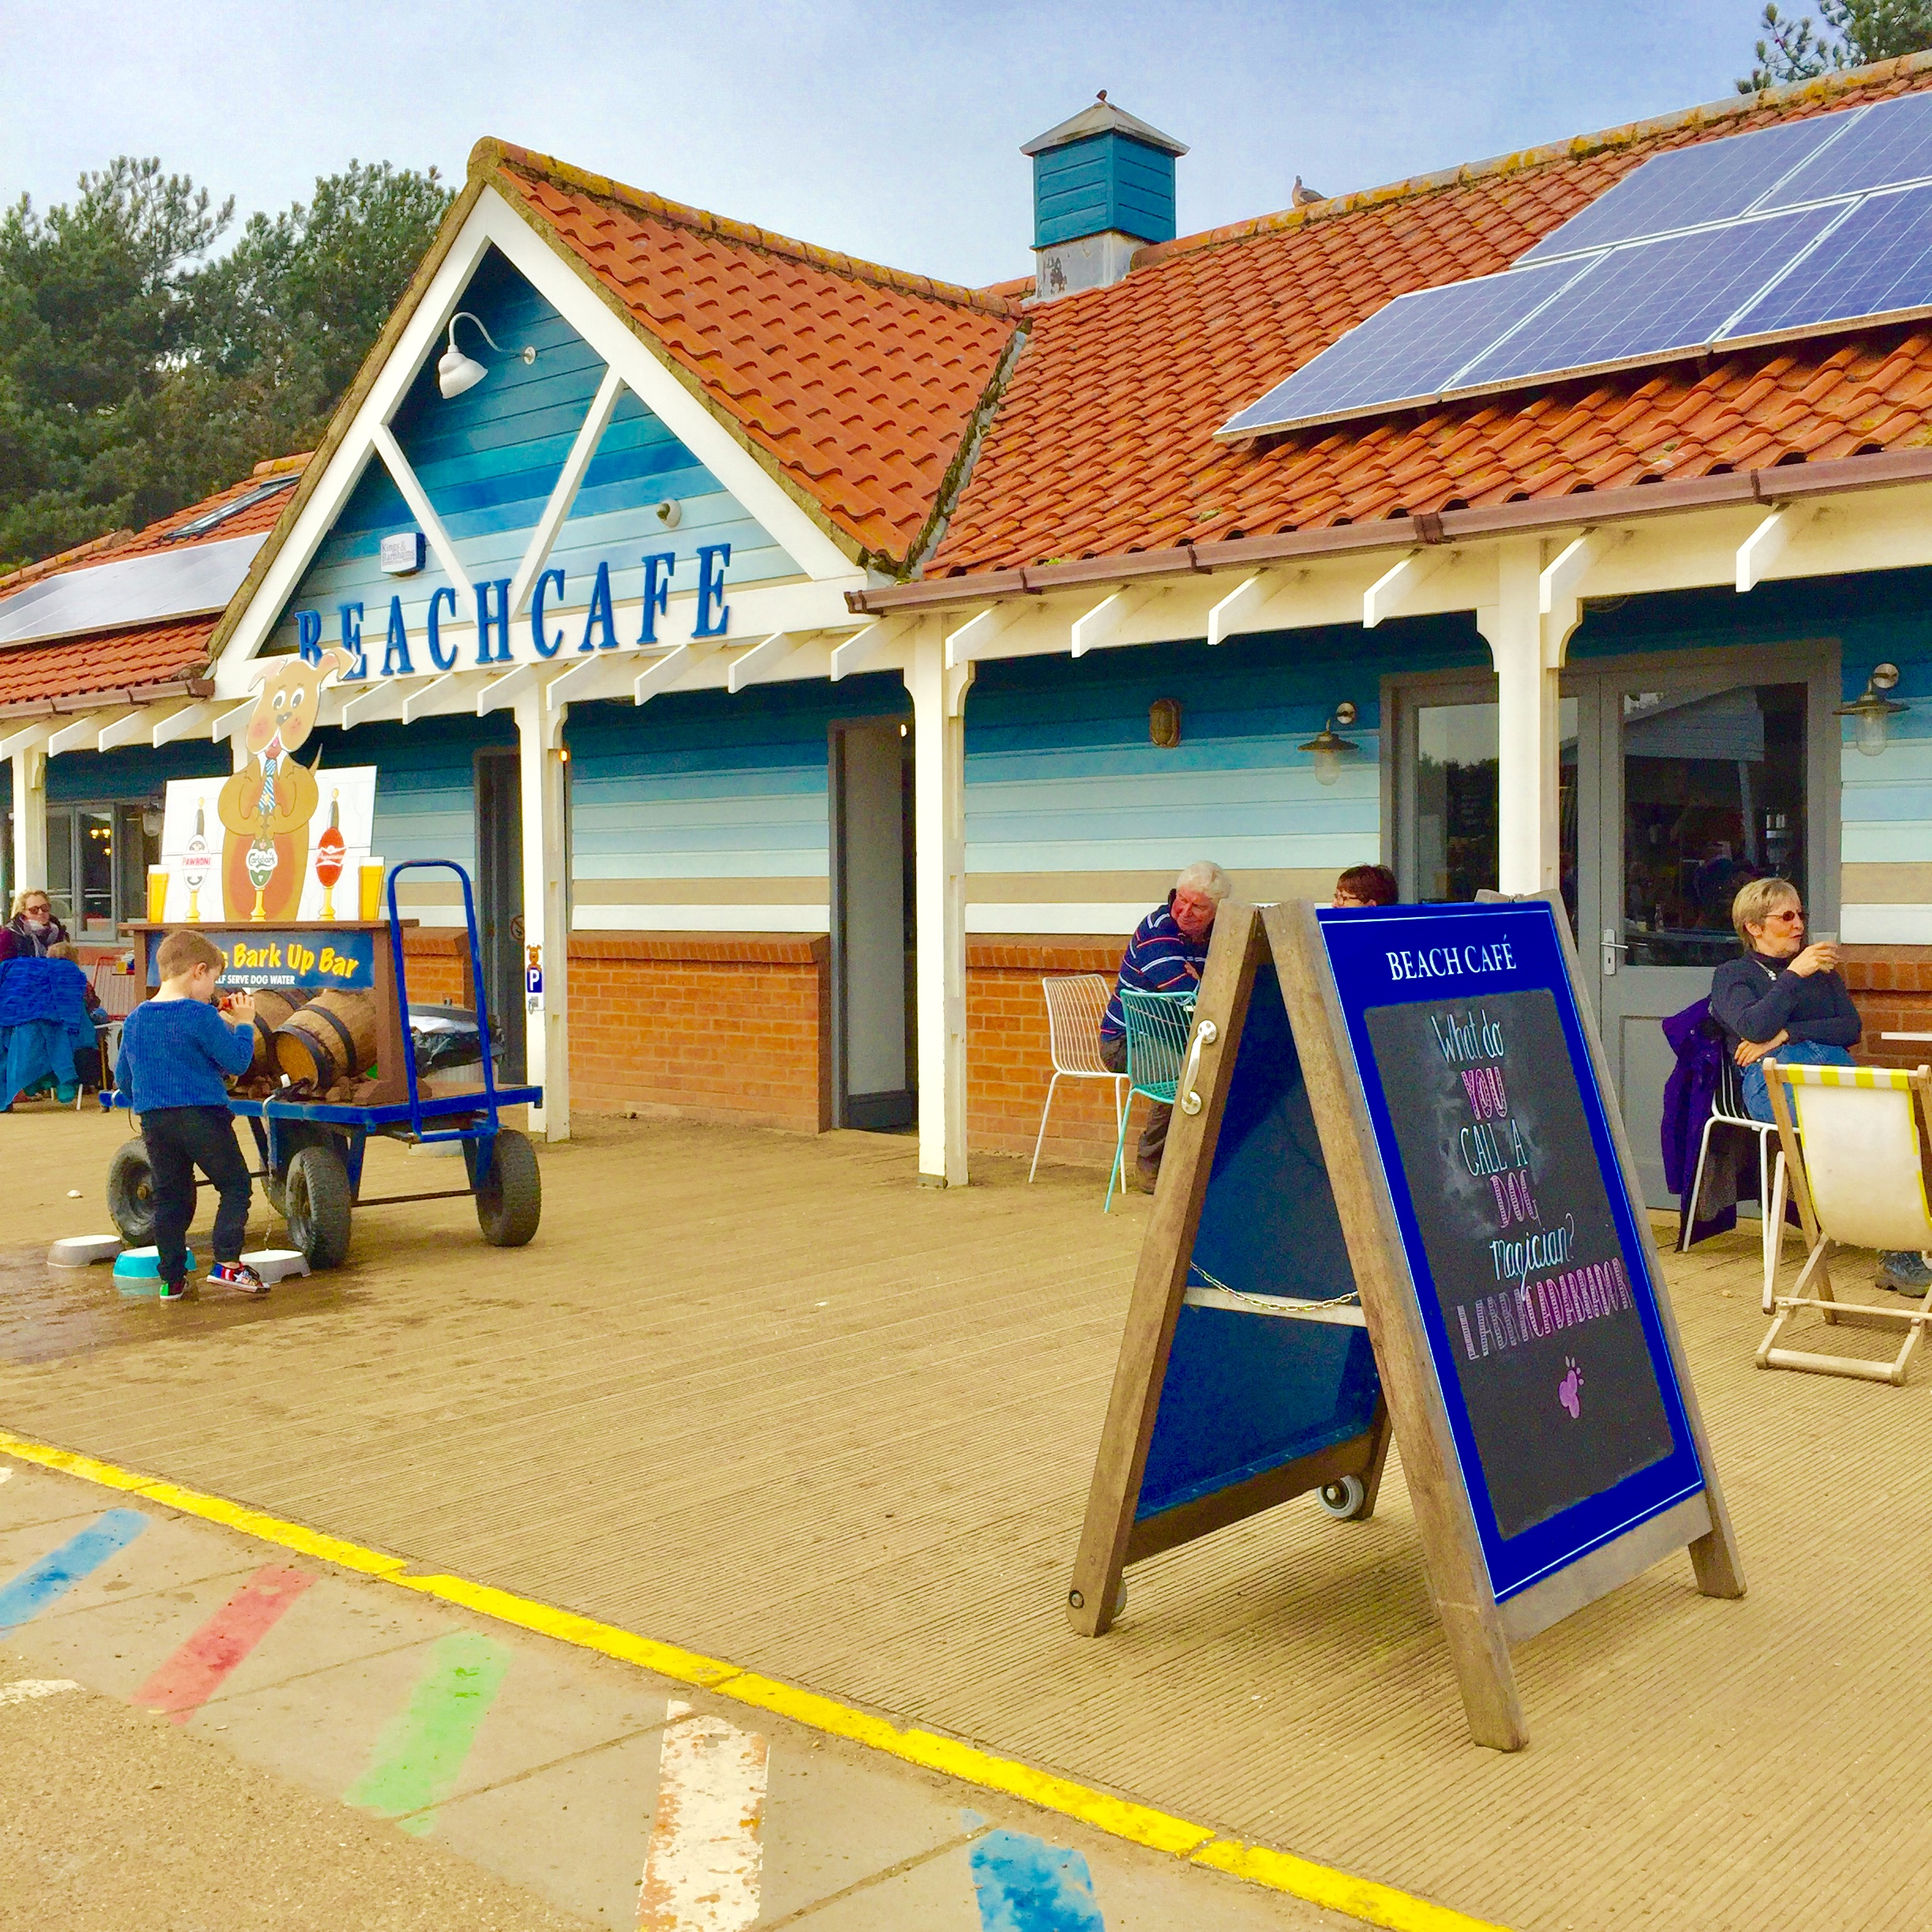 Wells beach Cafe